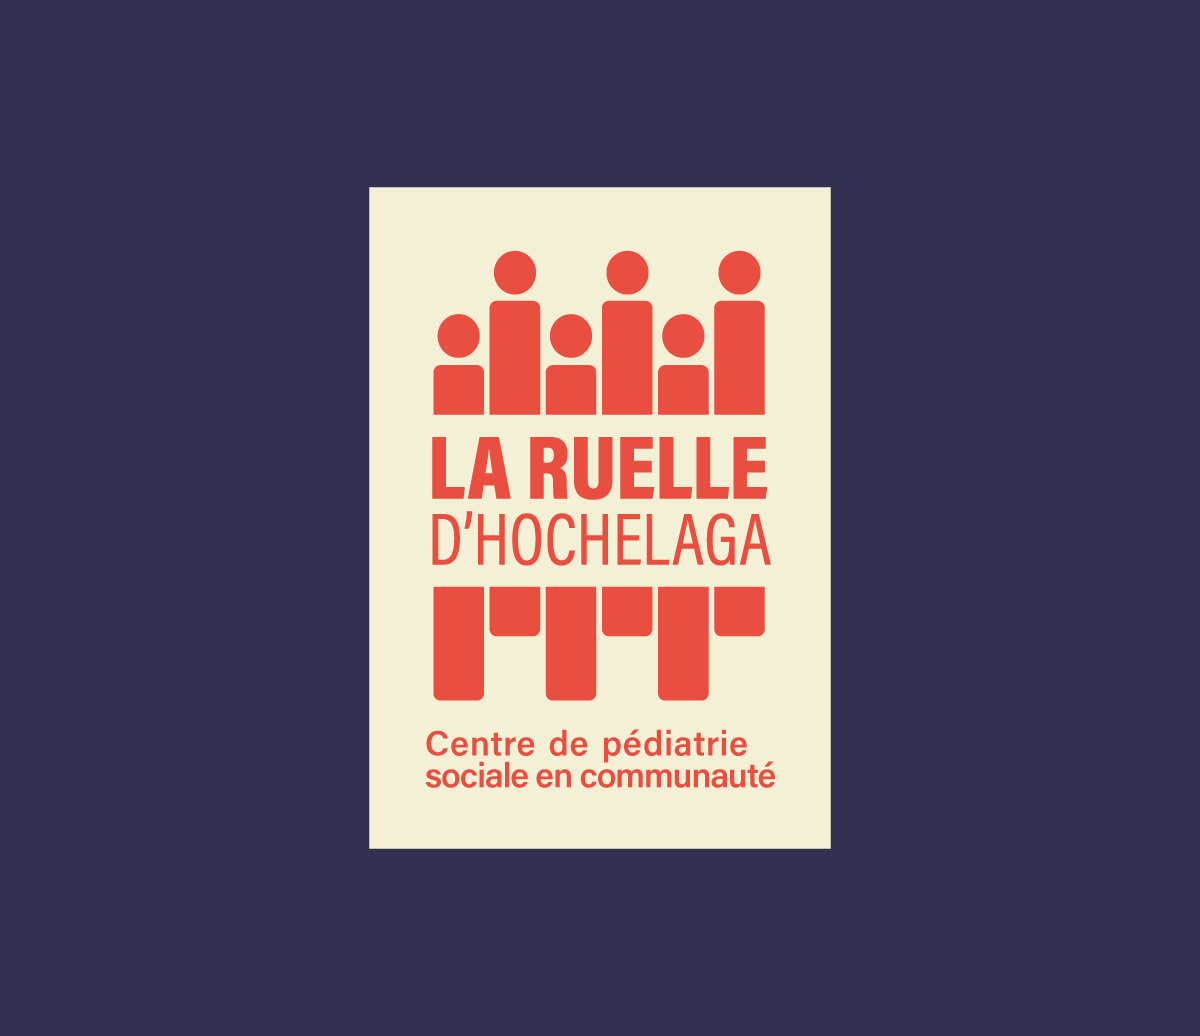 https://fondationdrjulien.org/wp-content/uploads/2021/03/Thumb_laruelle.png